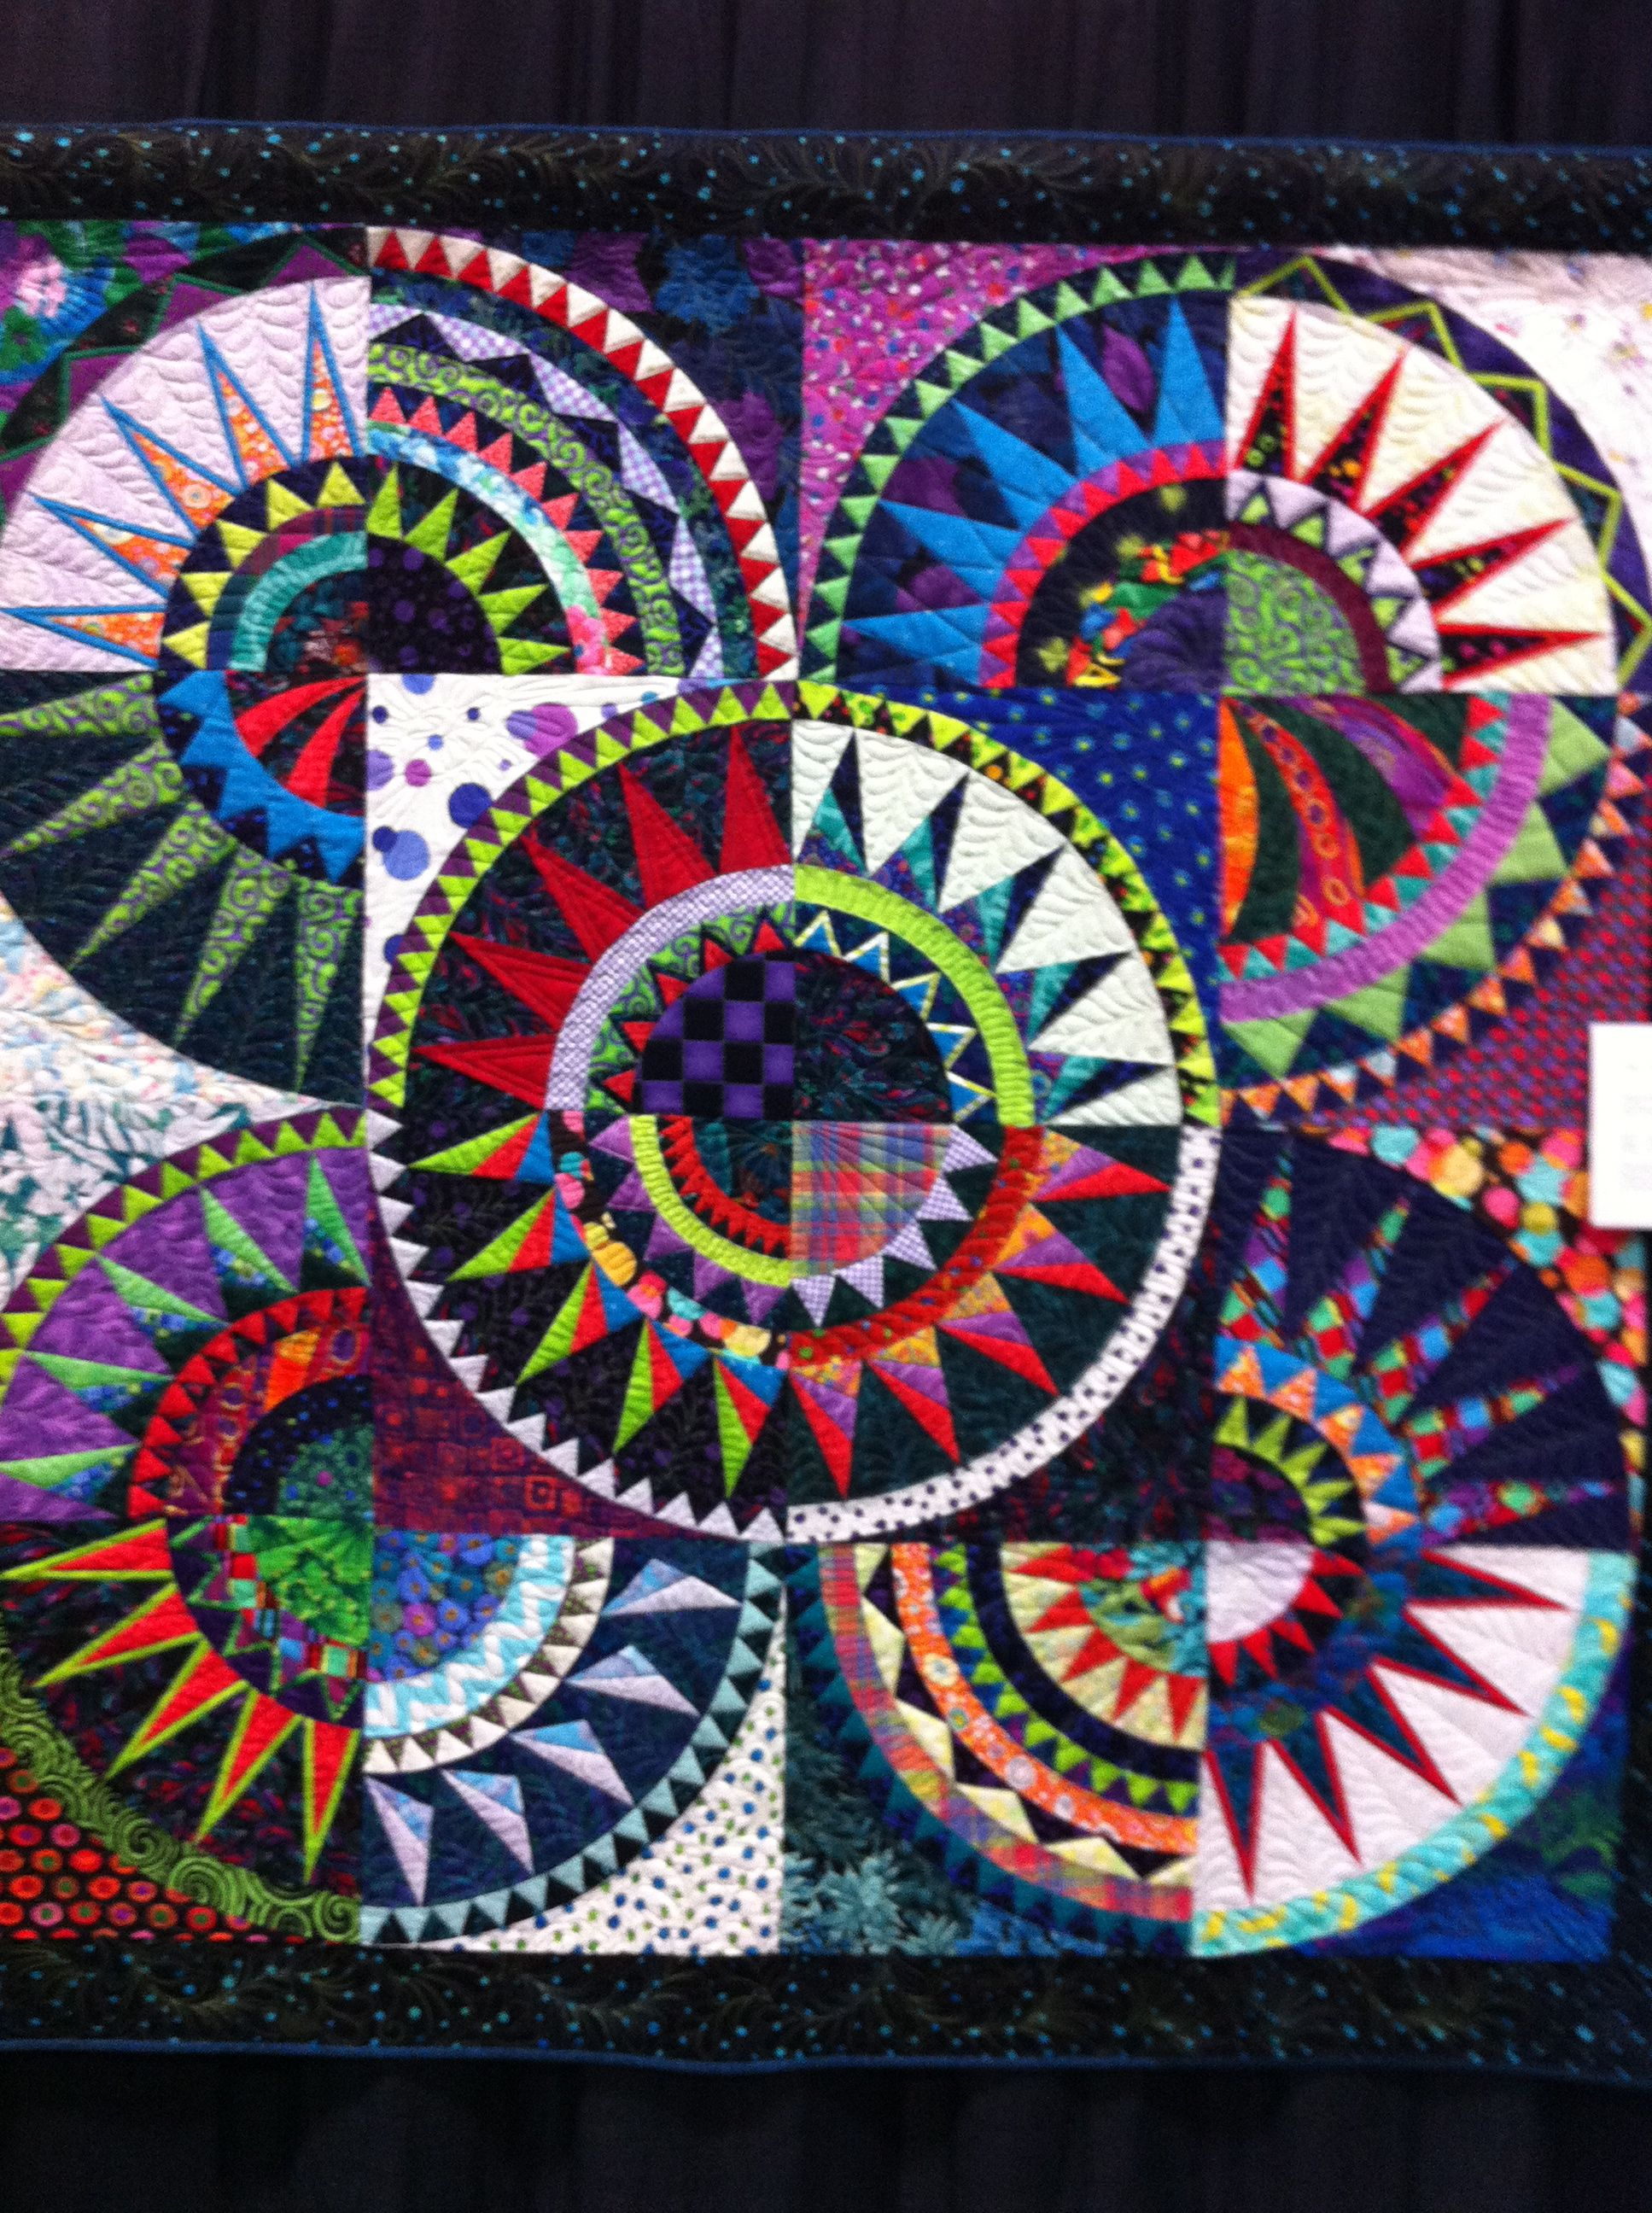 San Diego Quilt Show 9/13…one of my favorites. Sorry, didn